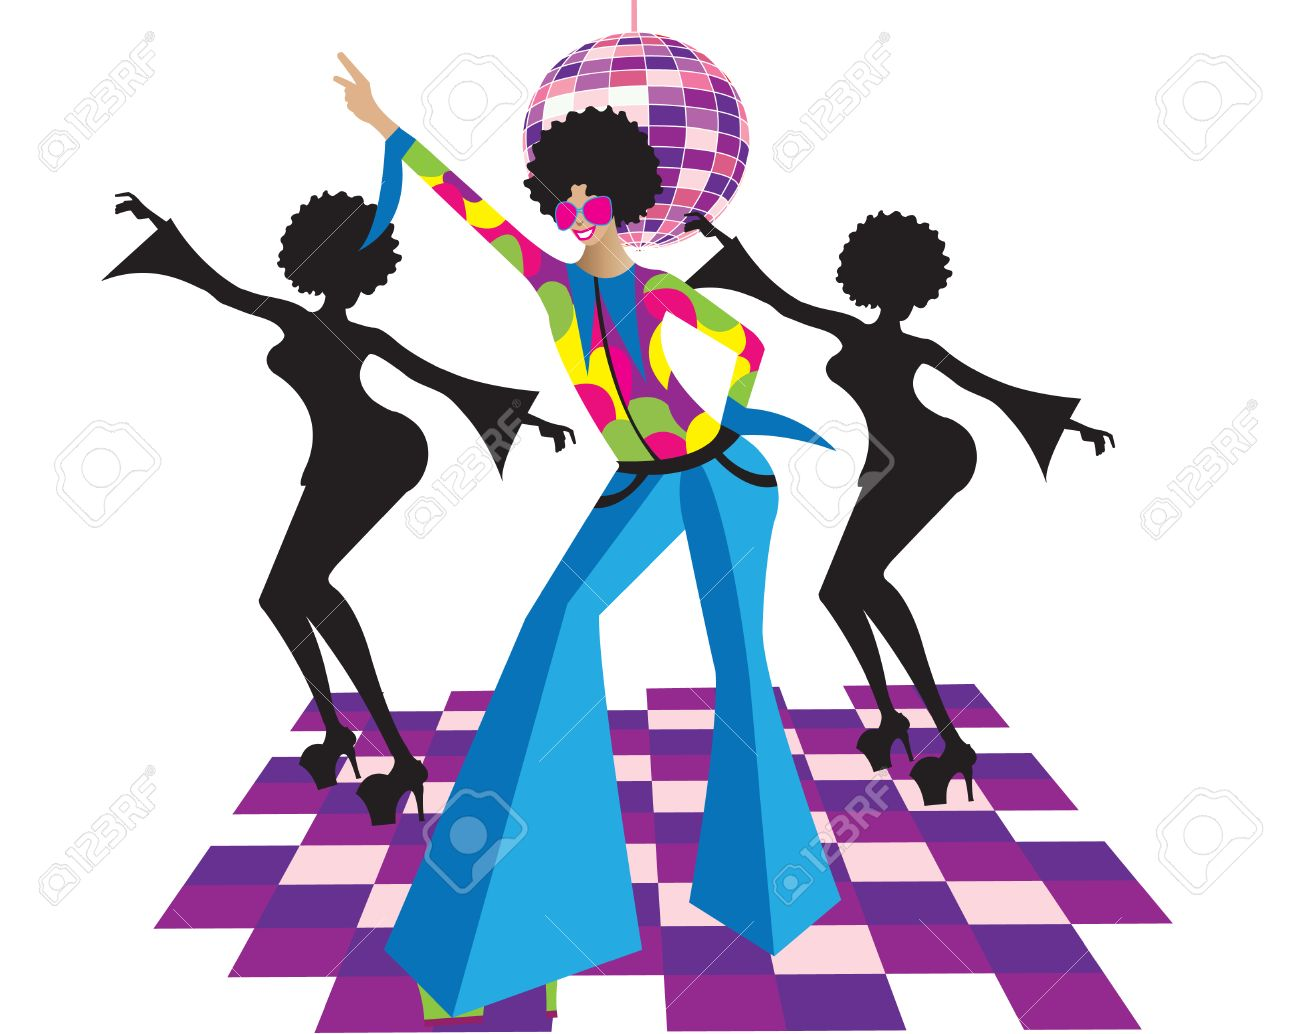 53 437 disco dancing cliparts stock vector and royalty free disco rh 123rf com disco clip art free download disco clip art free download